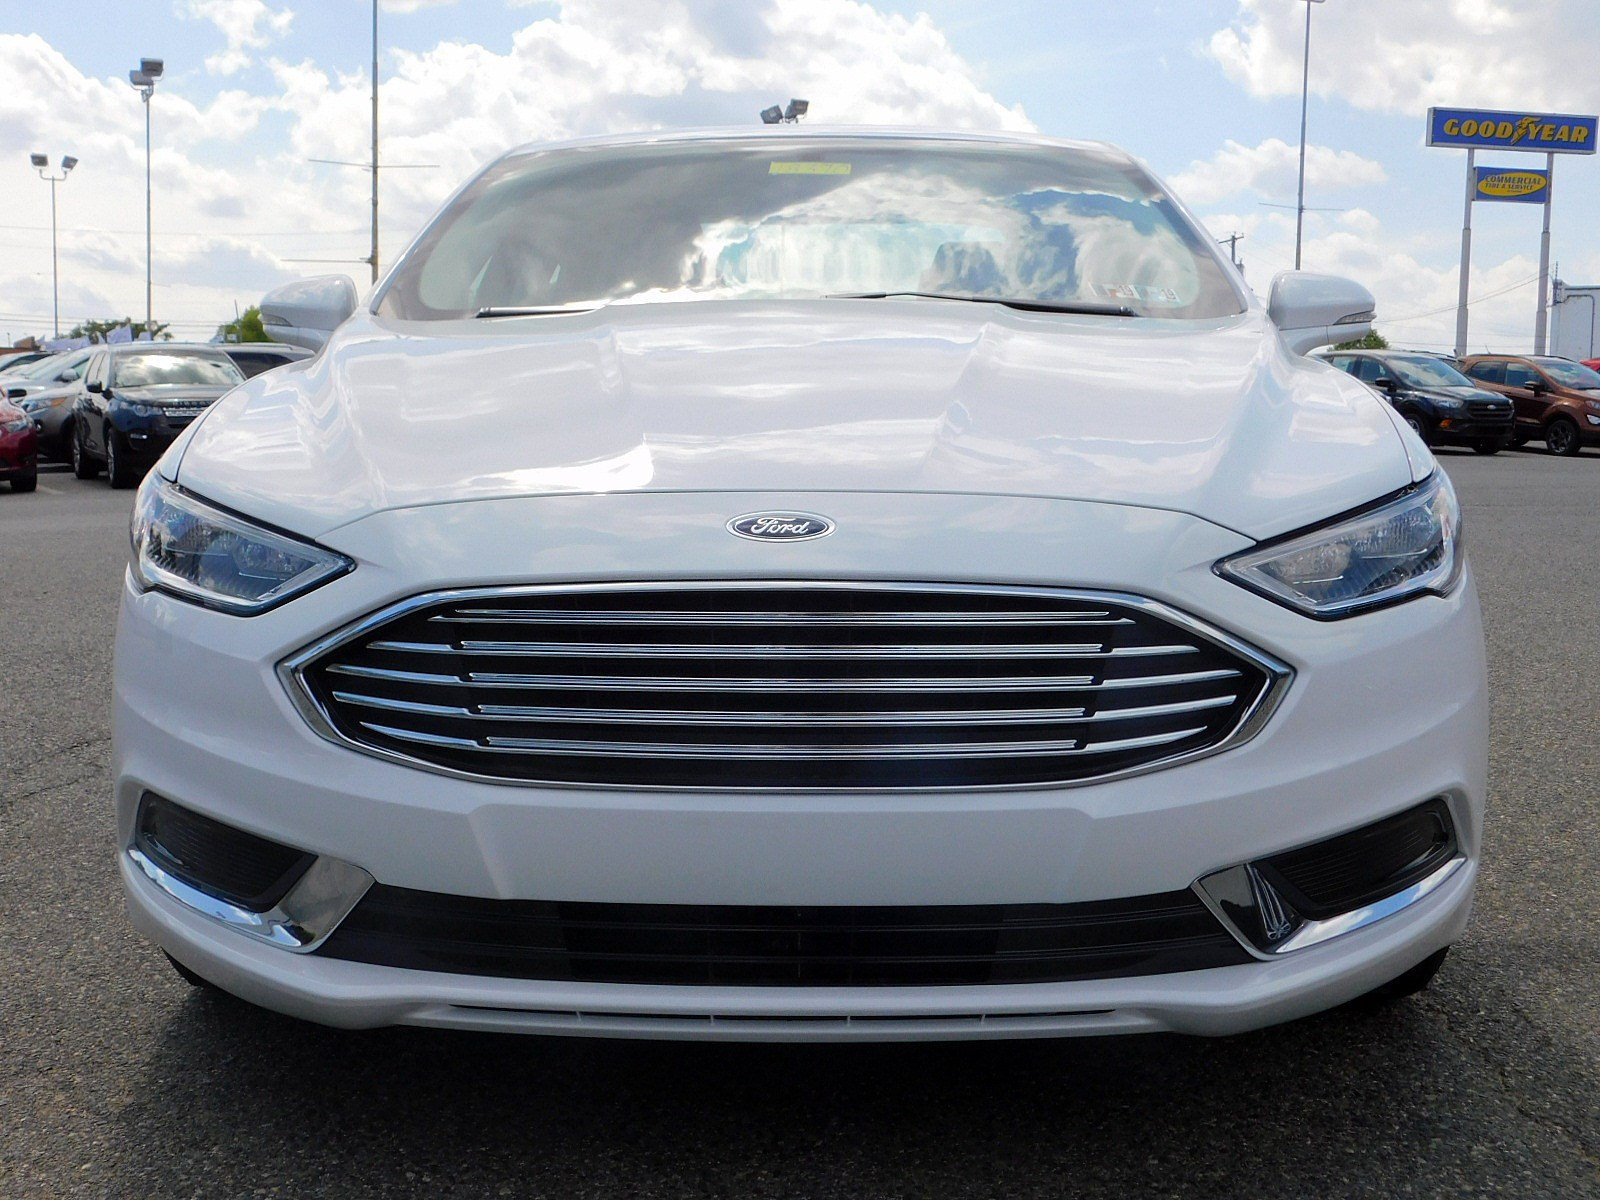 New 2018 Ford Fusion SE 4dr Car in Delaware County PA